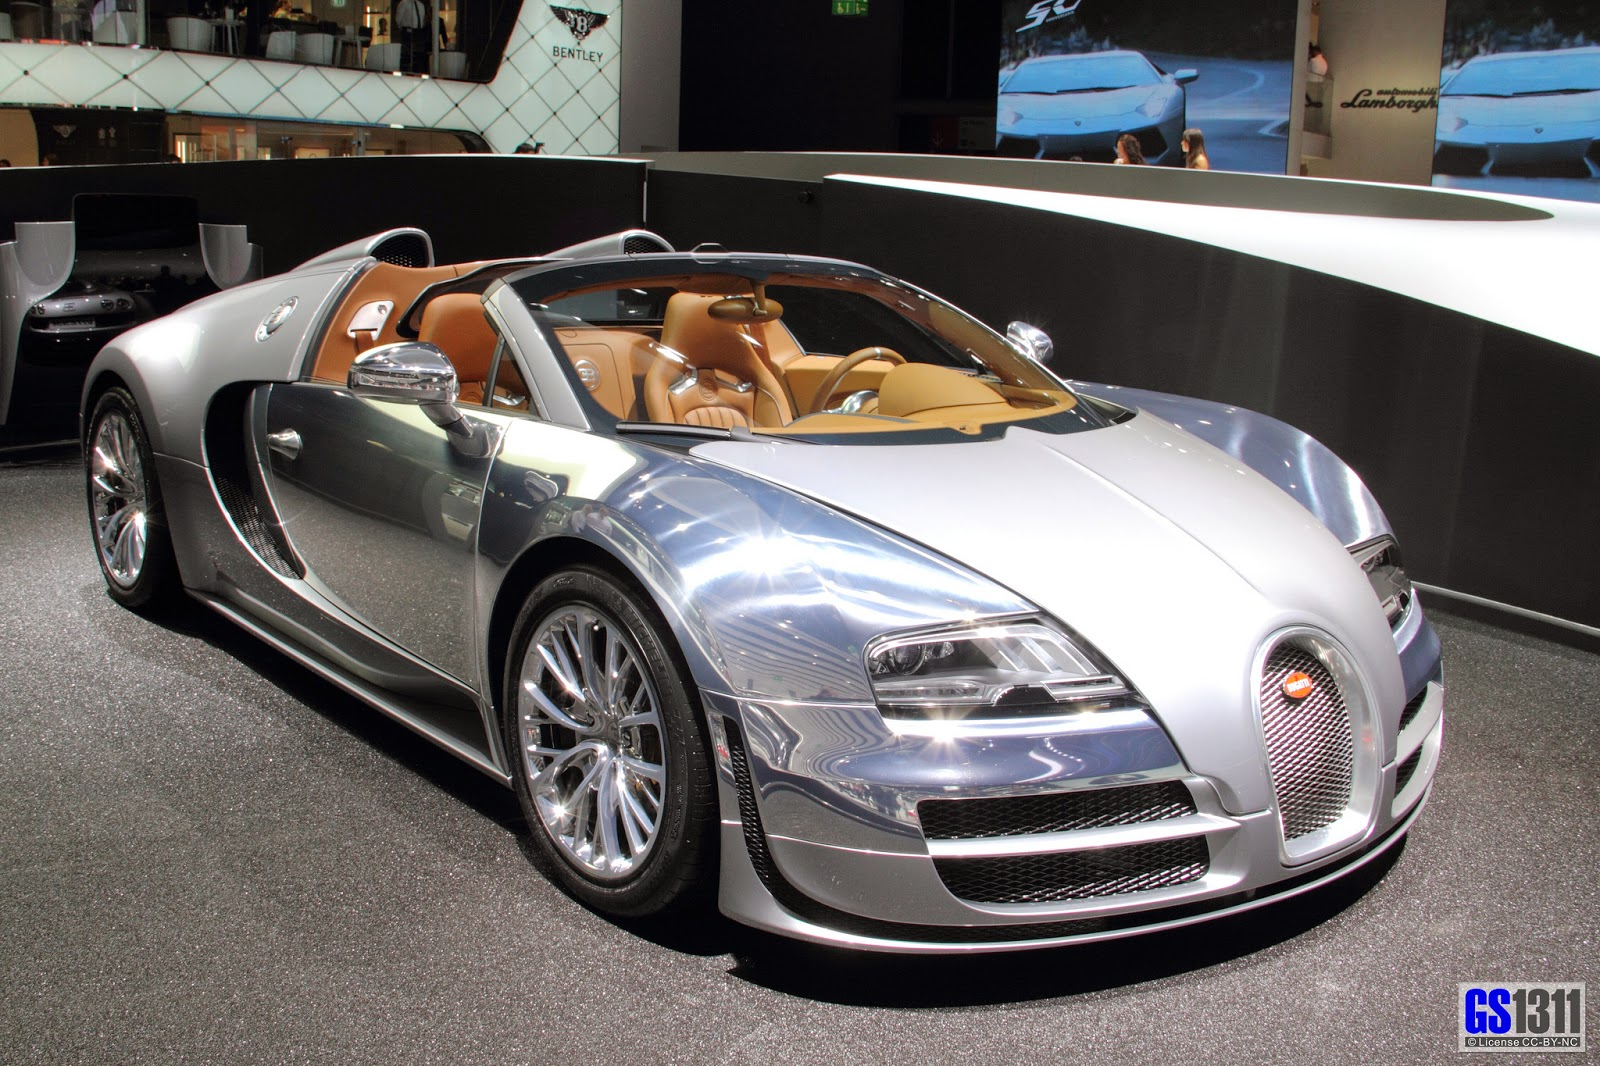 Bugatti Cars Expensive Cars: Blok888: Top 10 Most Expensive Cars In The World 2014